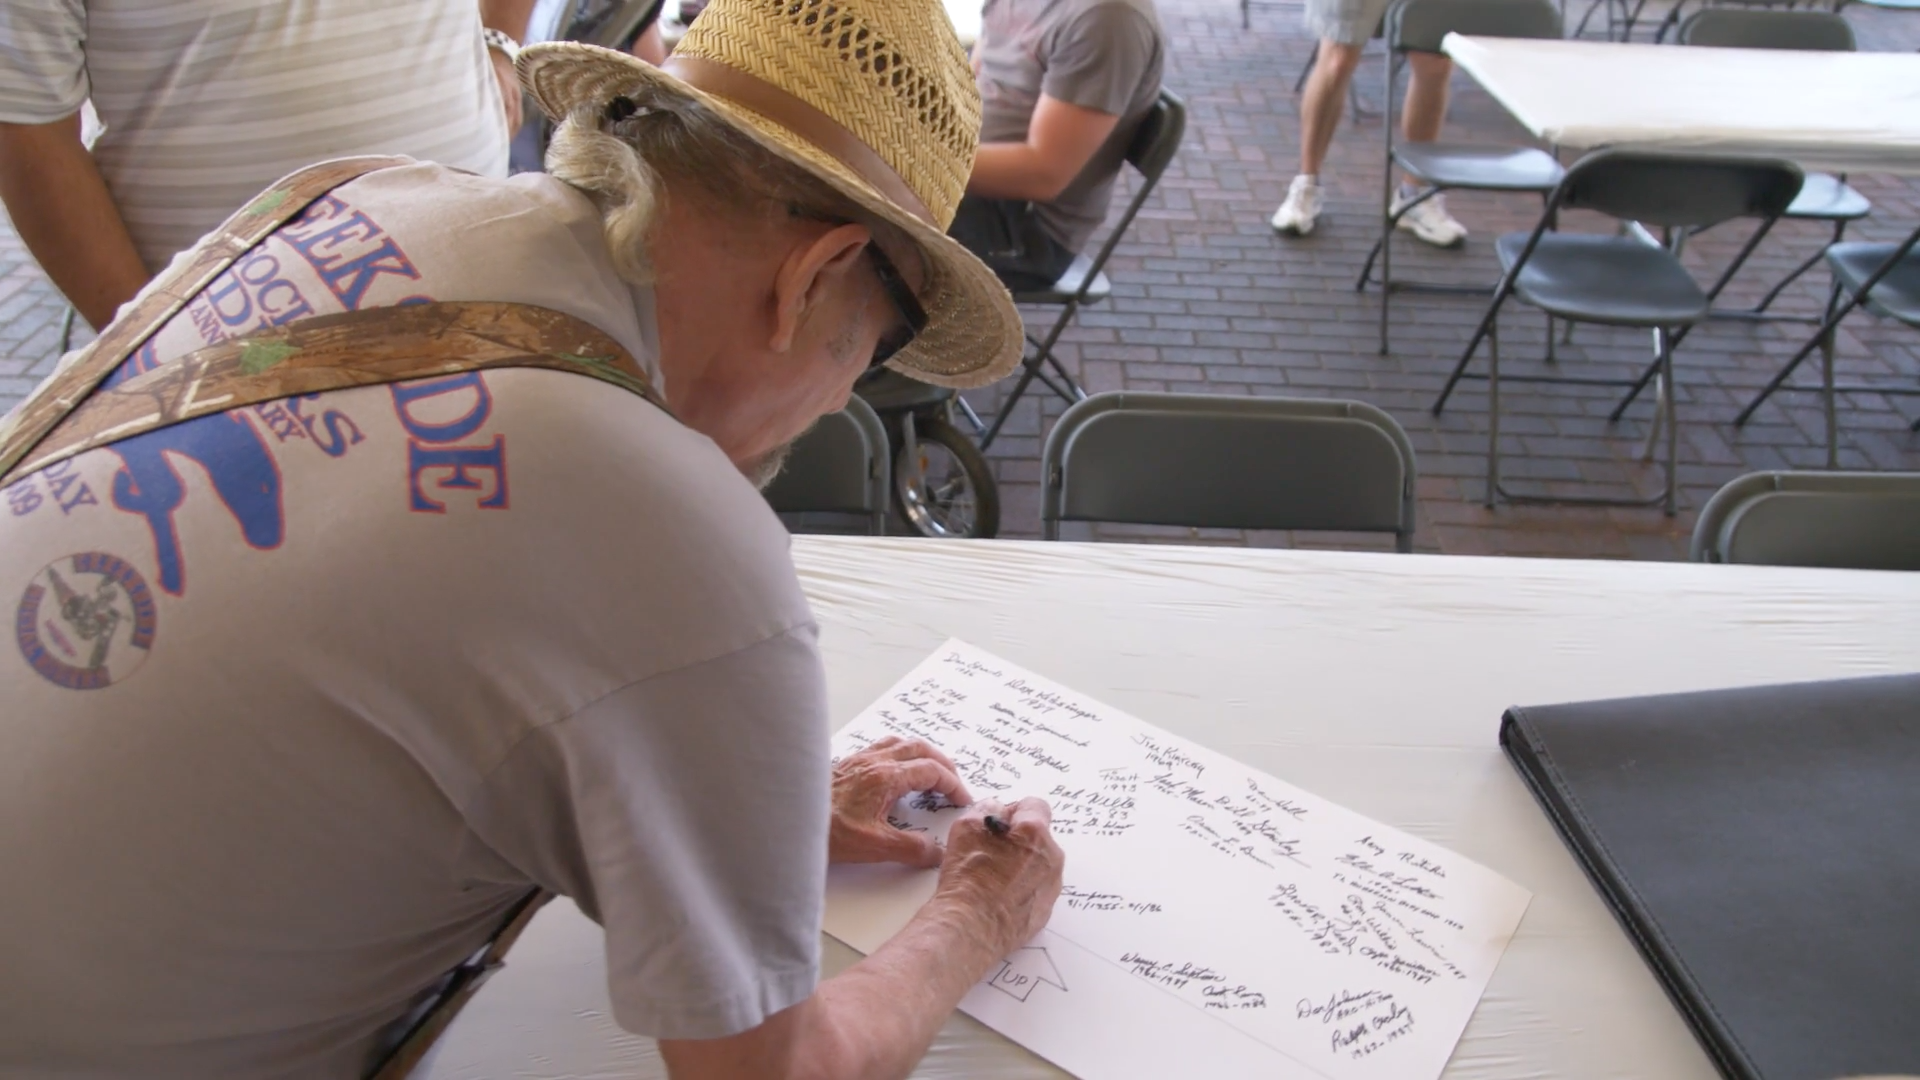 Numerous former Norwood employees signed the poster signature panel on August 26th